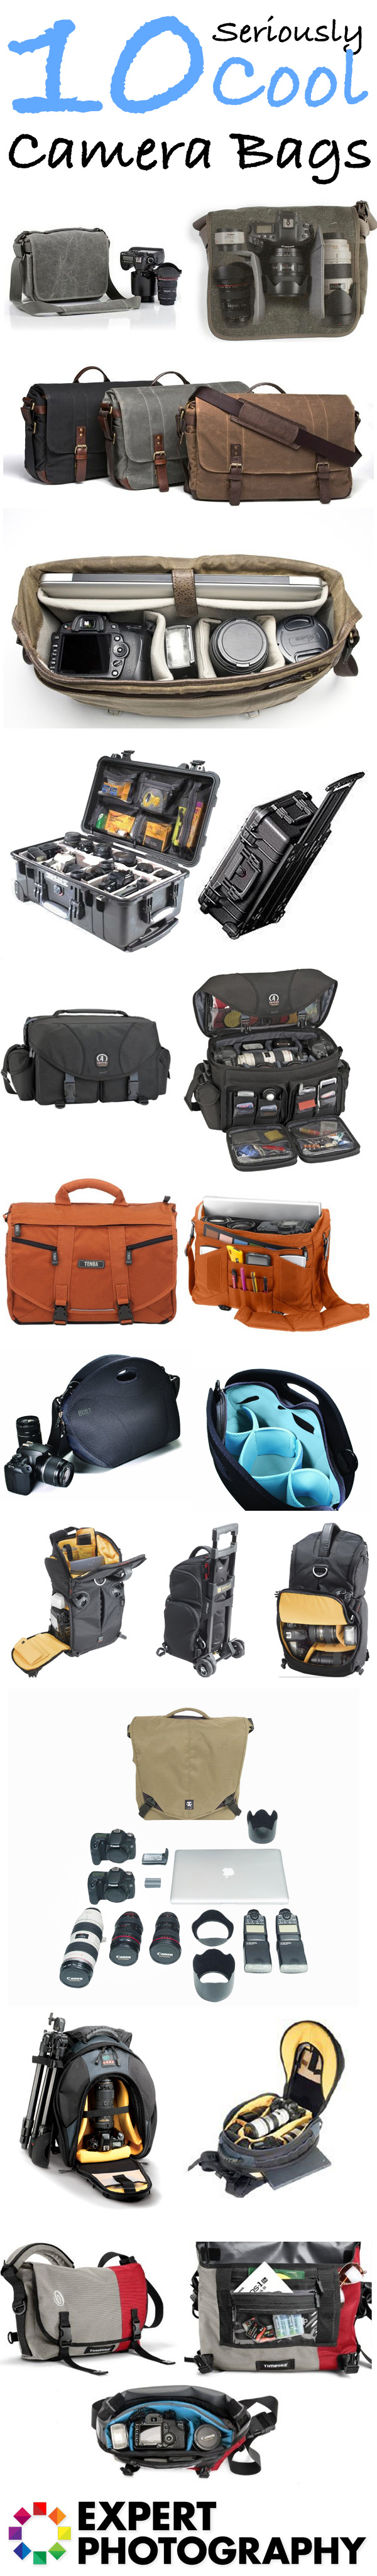 10 Seriouly Cool Camera Bags1 10 Seriously Cool Camera Bags